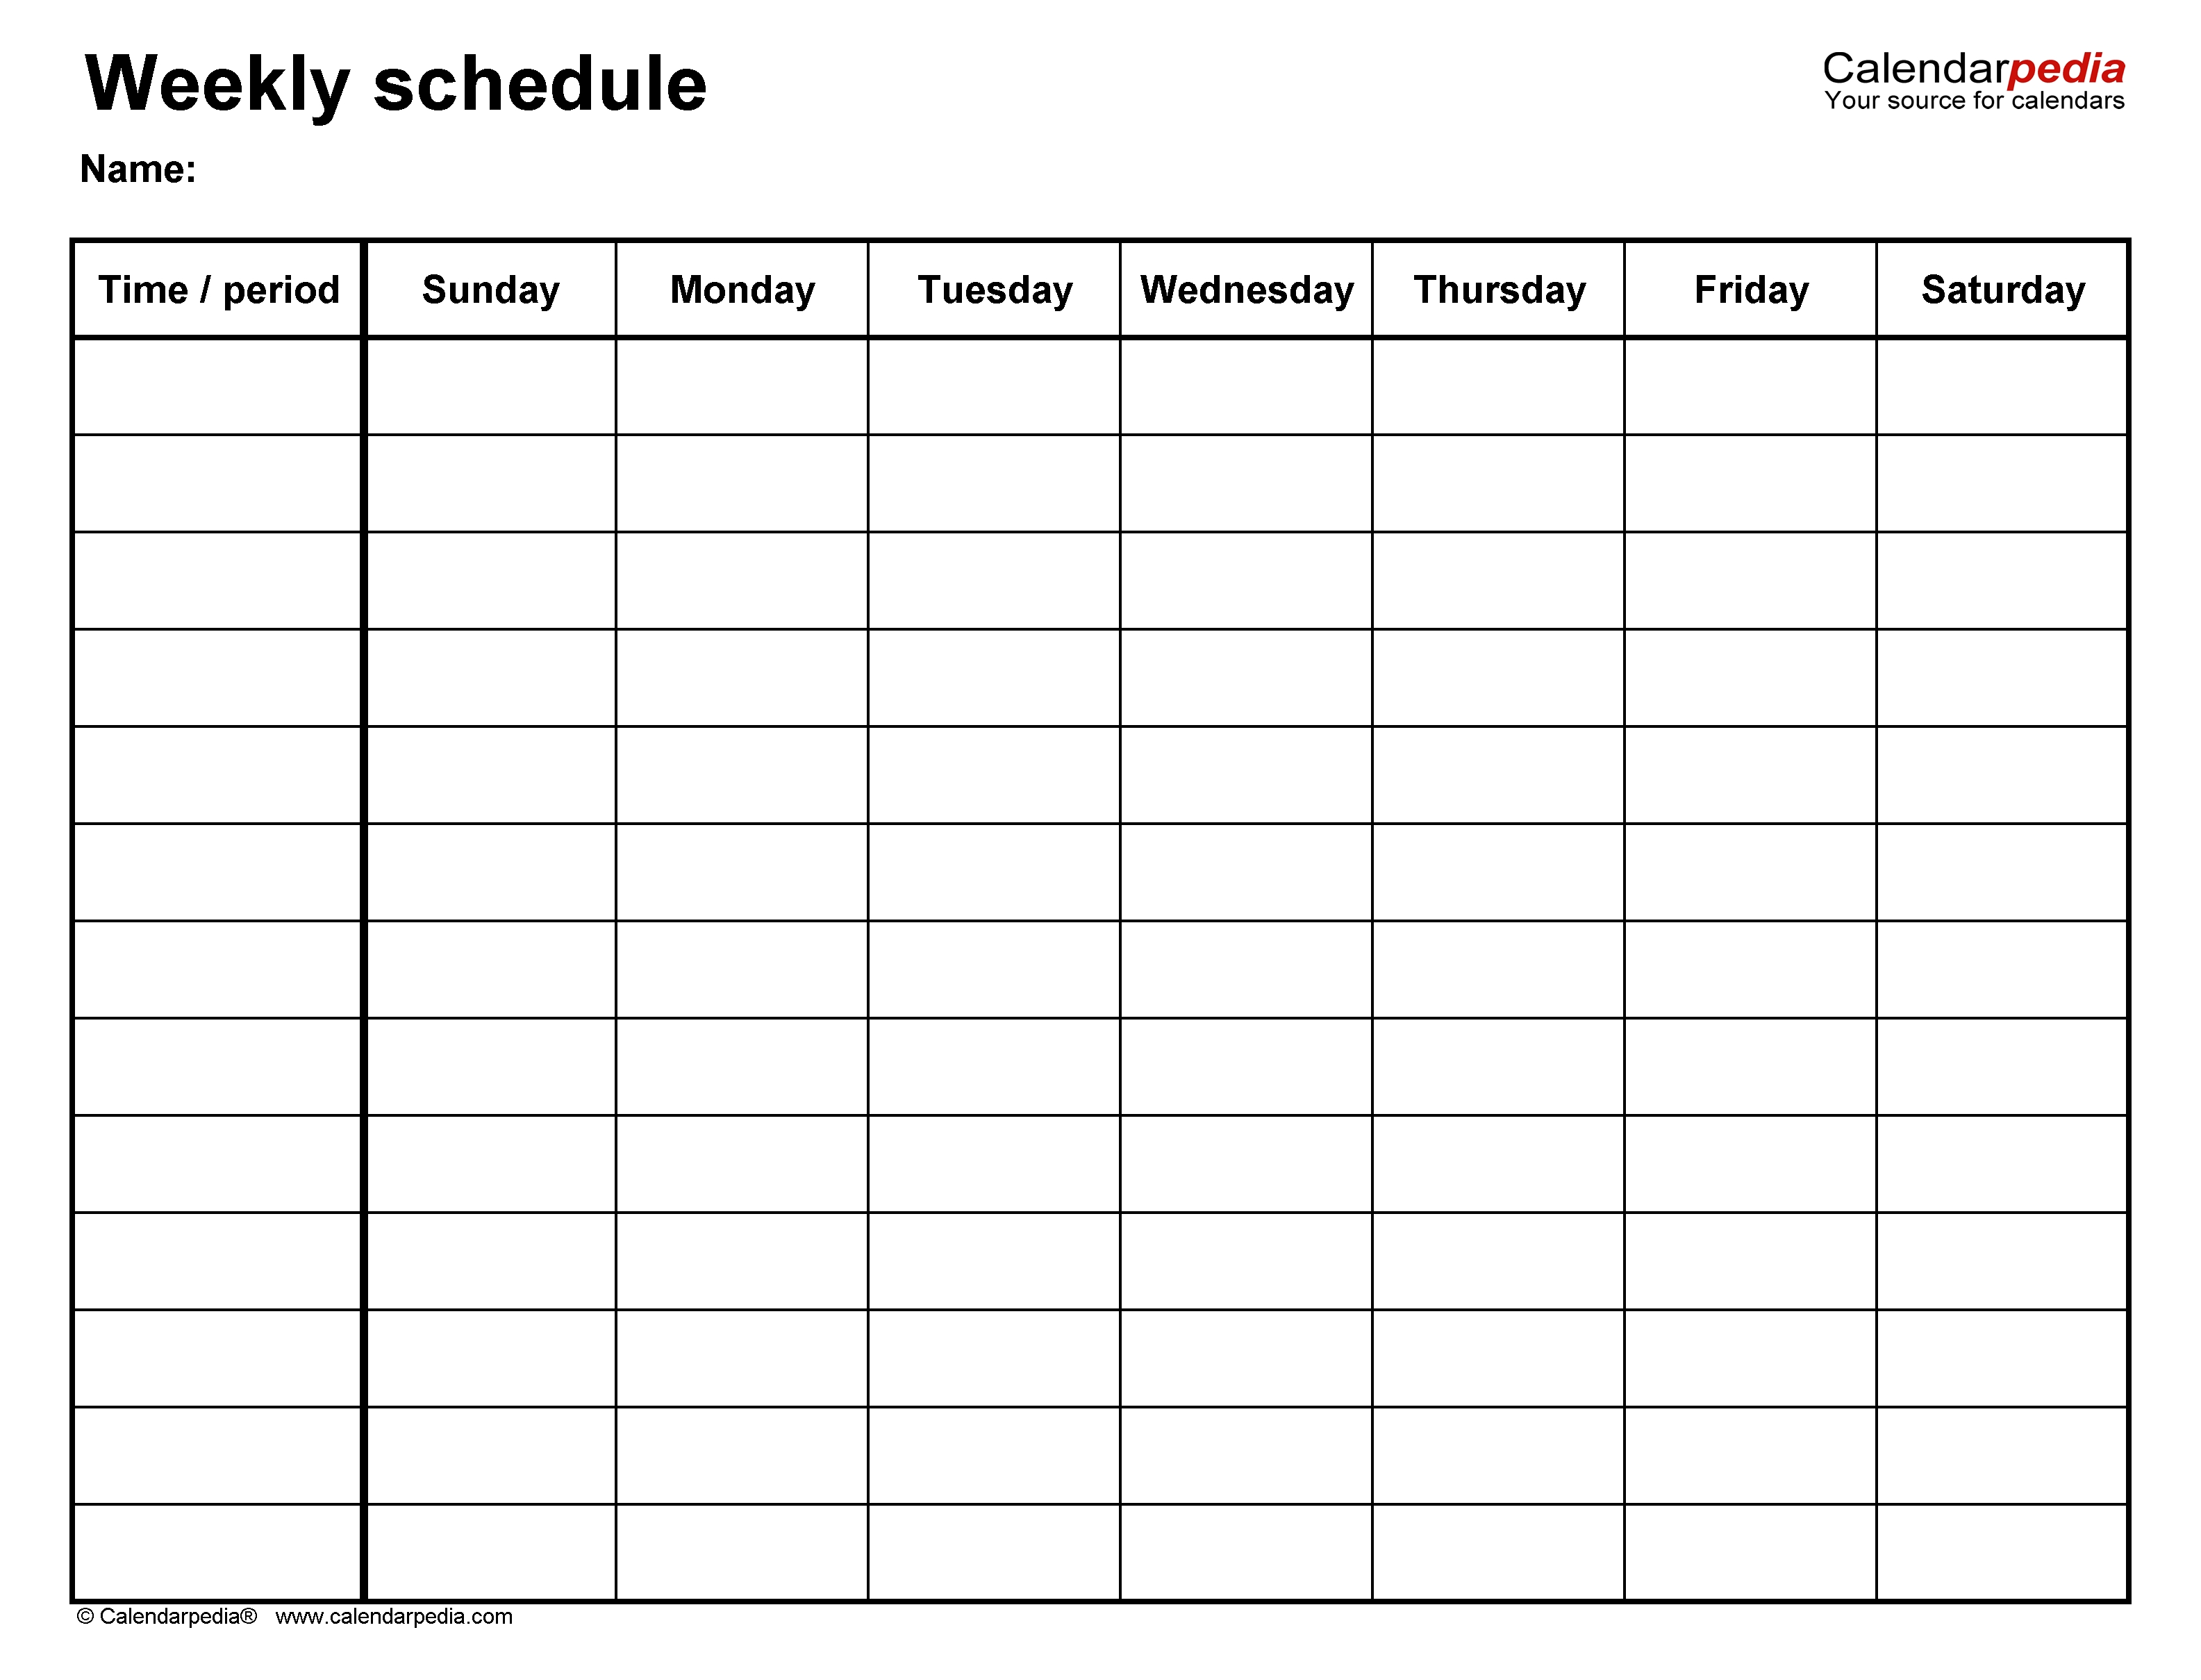 Free Weekly Schedule Templates For Word - 18 Templates  Weekly Calendar Template Editable